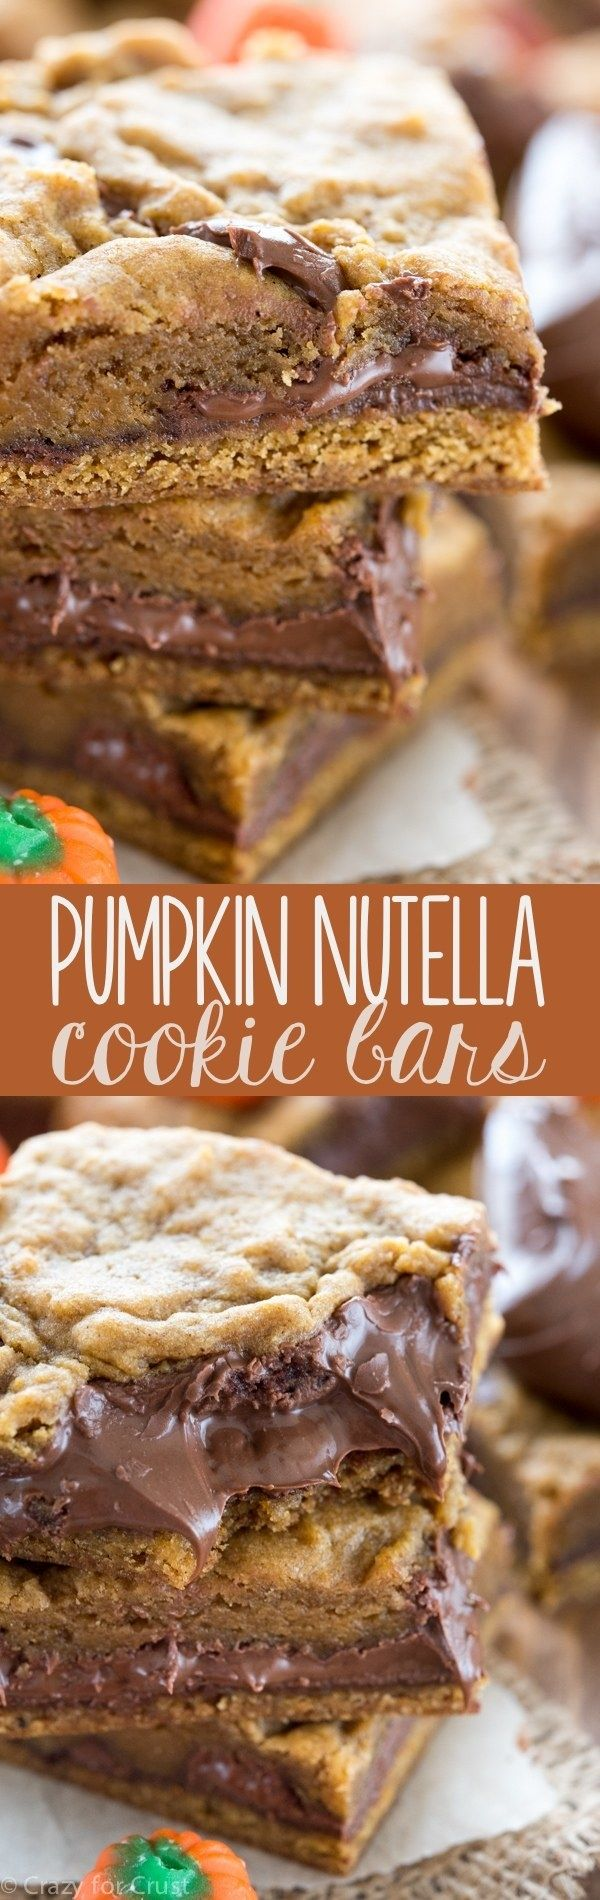 Equally in love with pumpkin and Nutella? These cookie bars have your back. | 14 Pumpkin Recipes You Need To Make, According To Pinterest